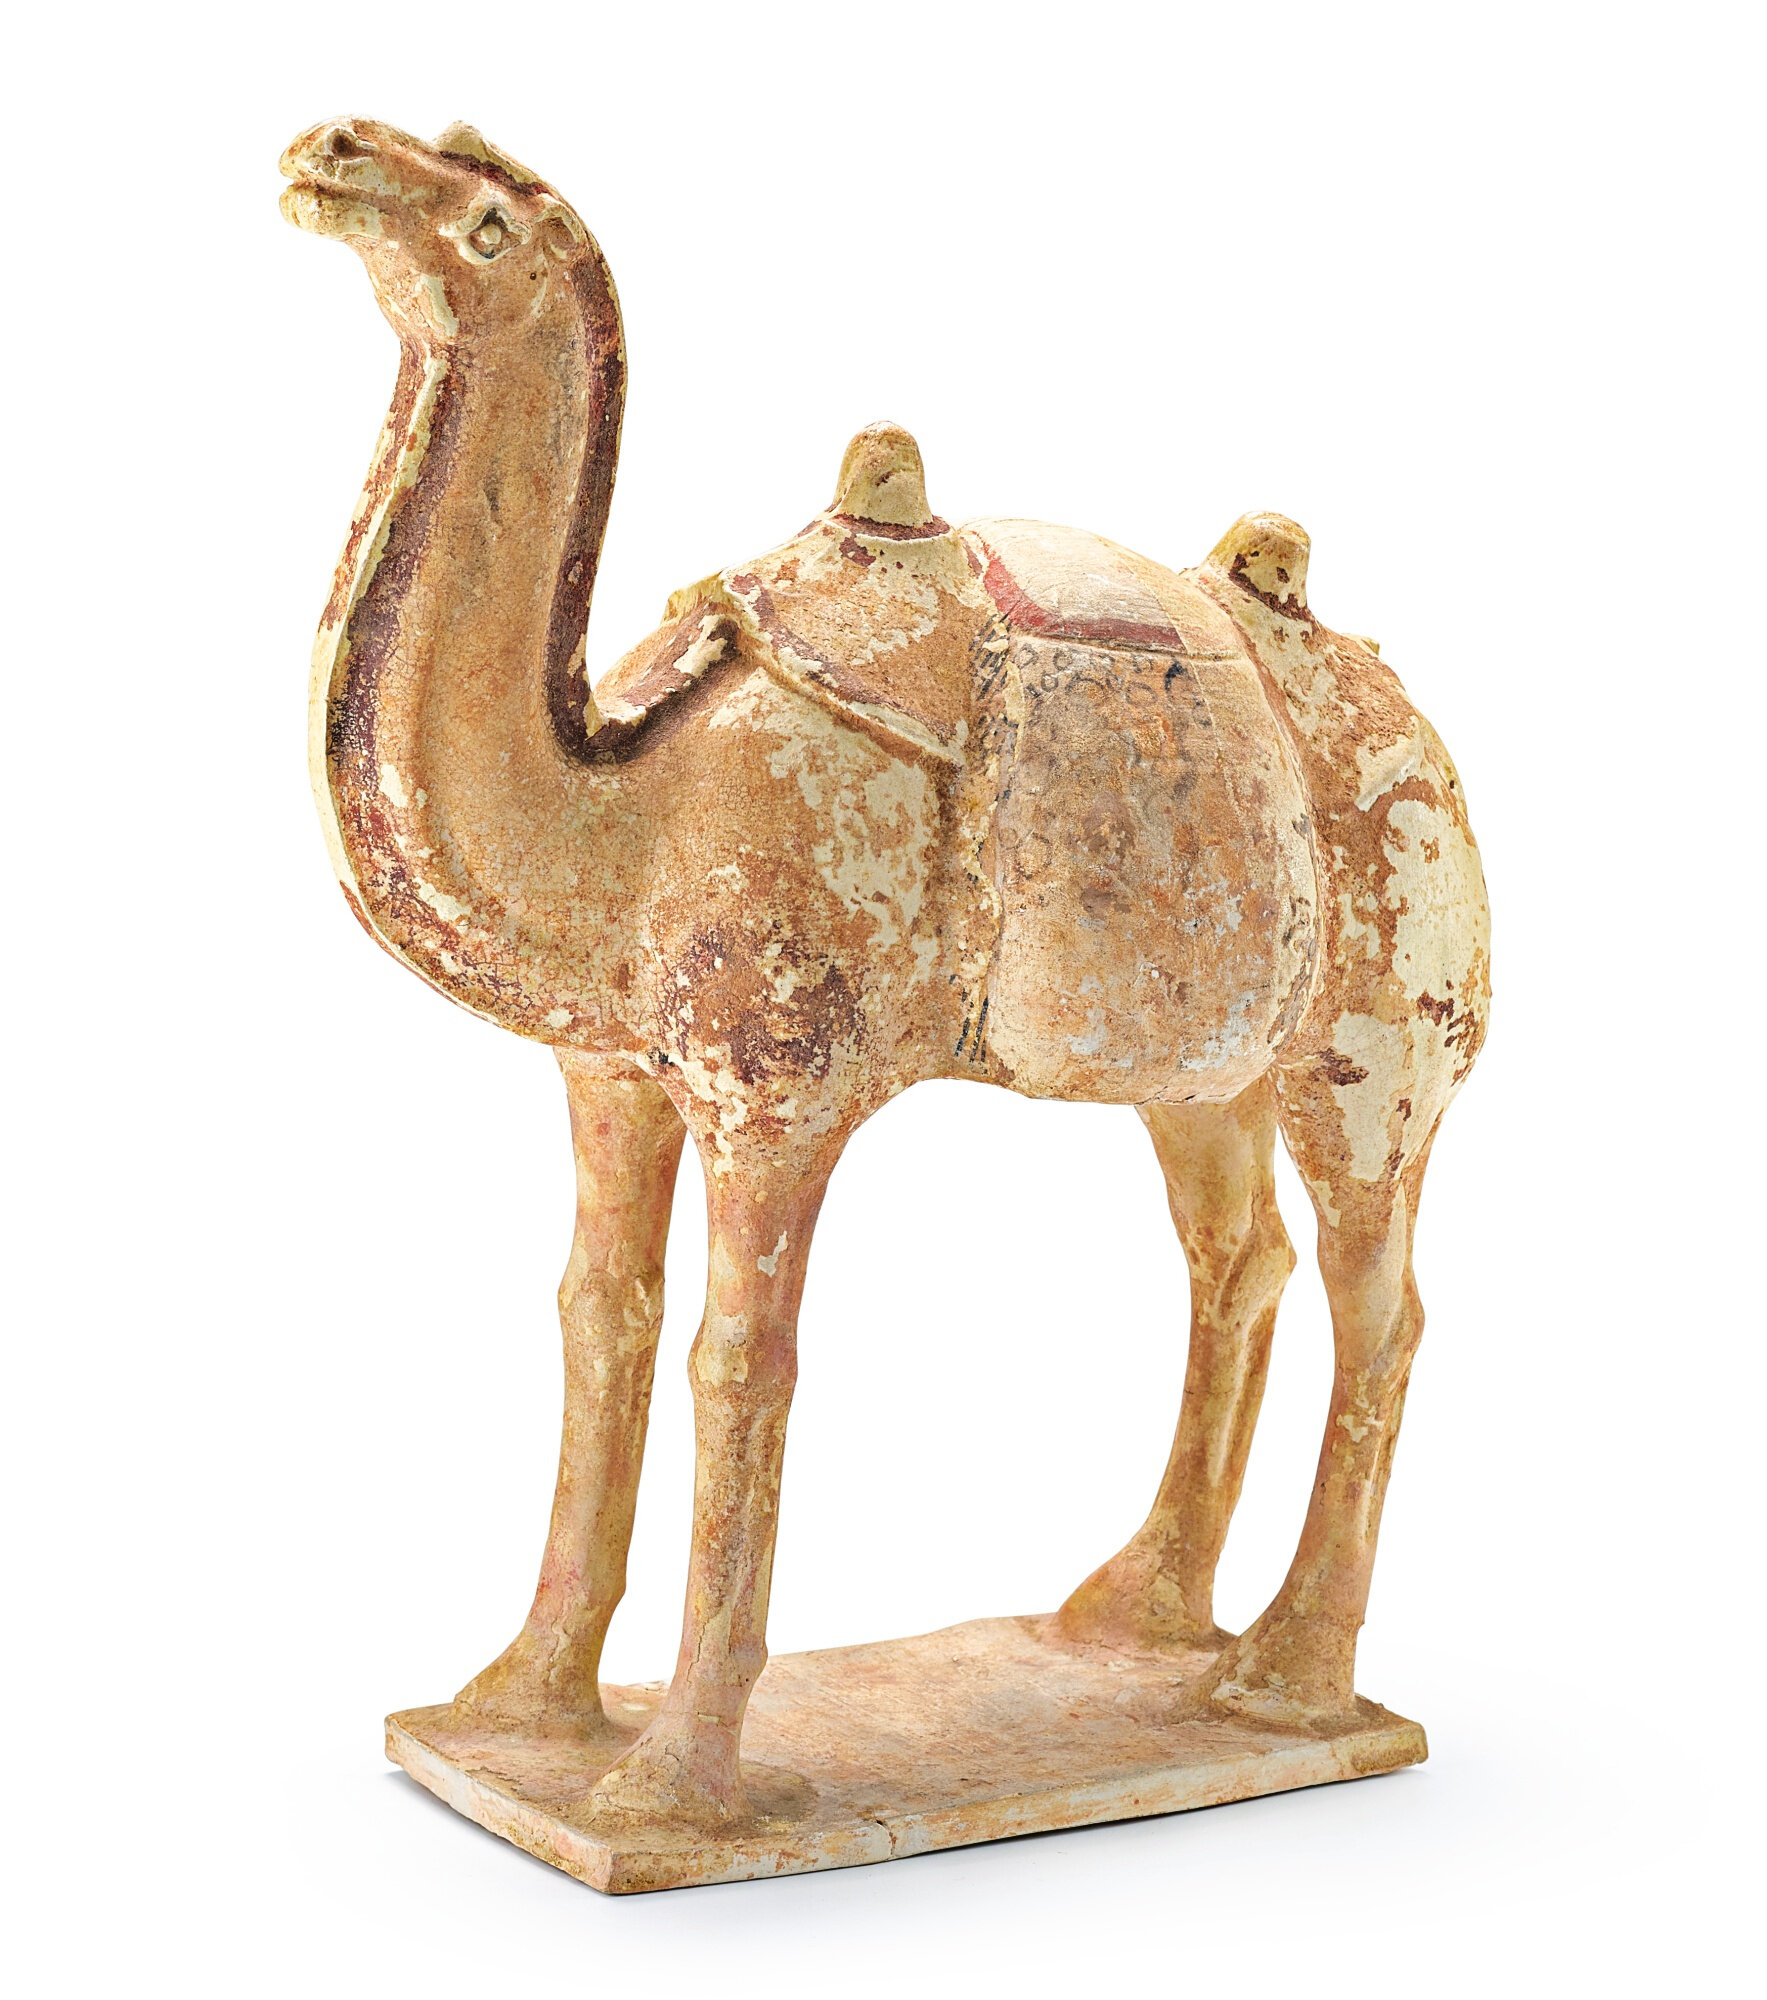 A painted pottery figure of a camel, early Tang dynasty (618-906)